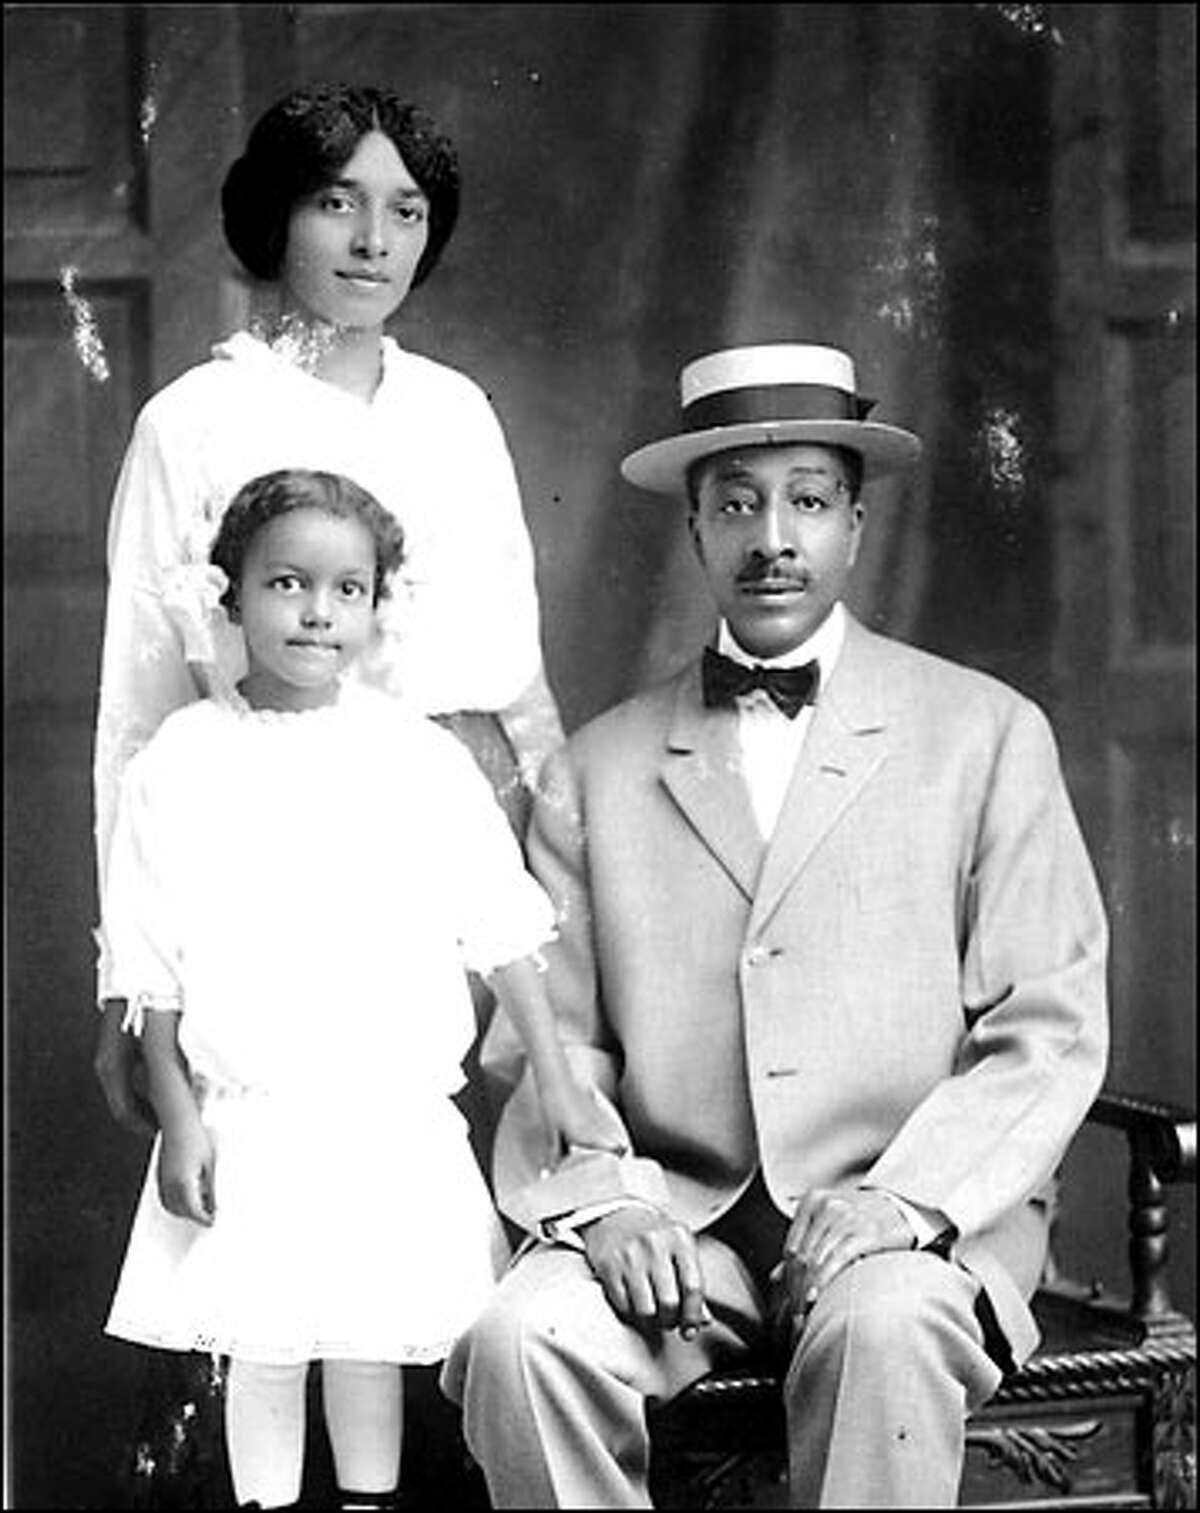 The identities of this early 20th century Seattle family are unknown, but the portrait shows that family life had become an important element of black Seattle since frontier days, when most residents were male.